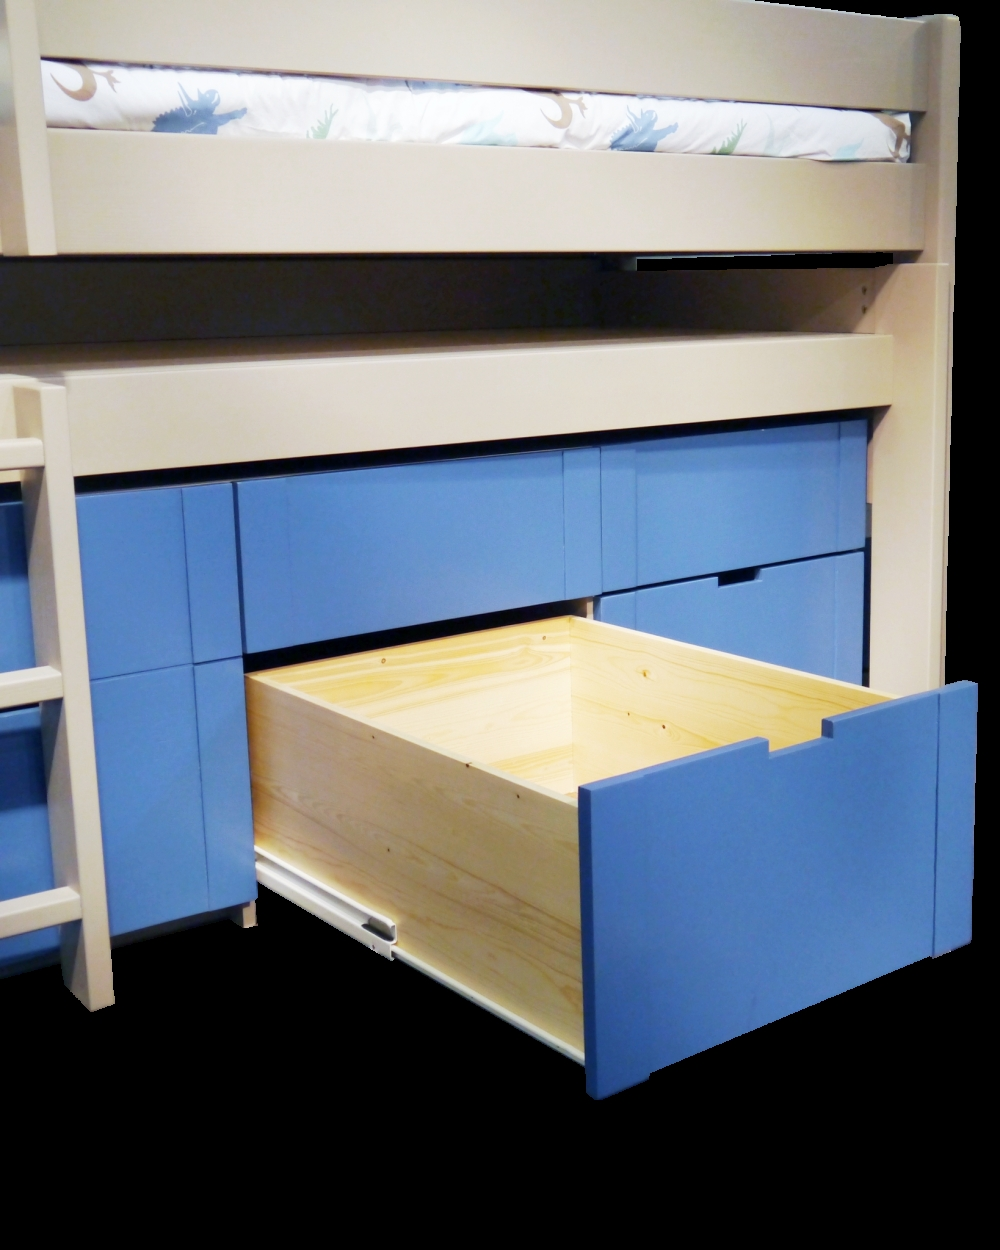 Magnificent Bunk Bed with Desk and Drawers On